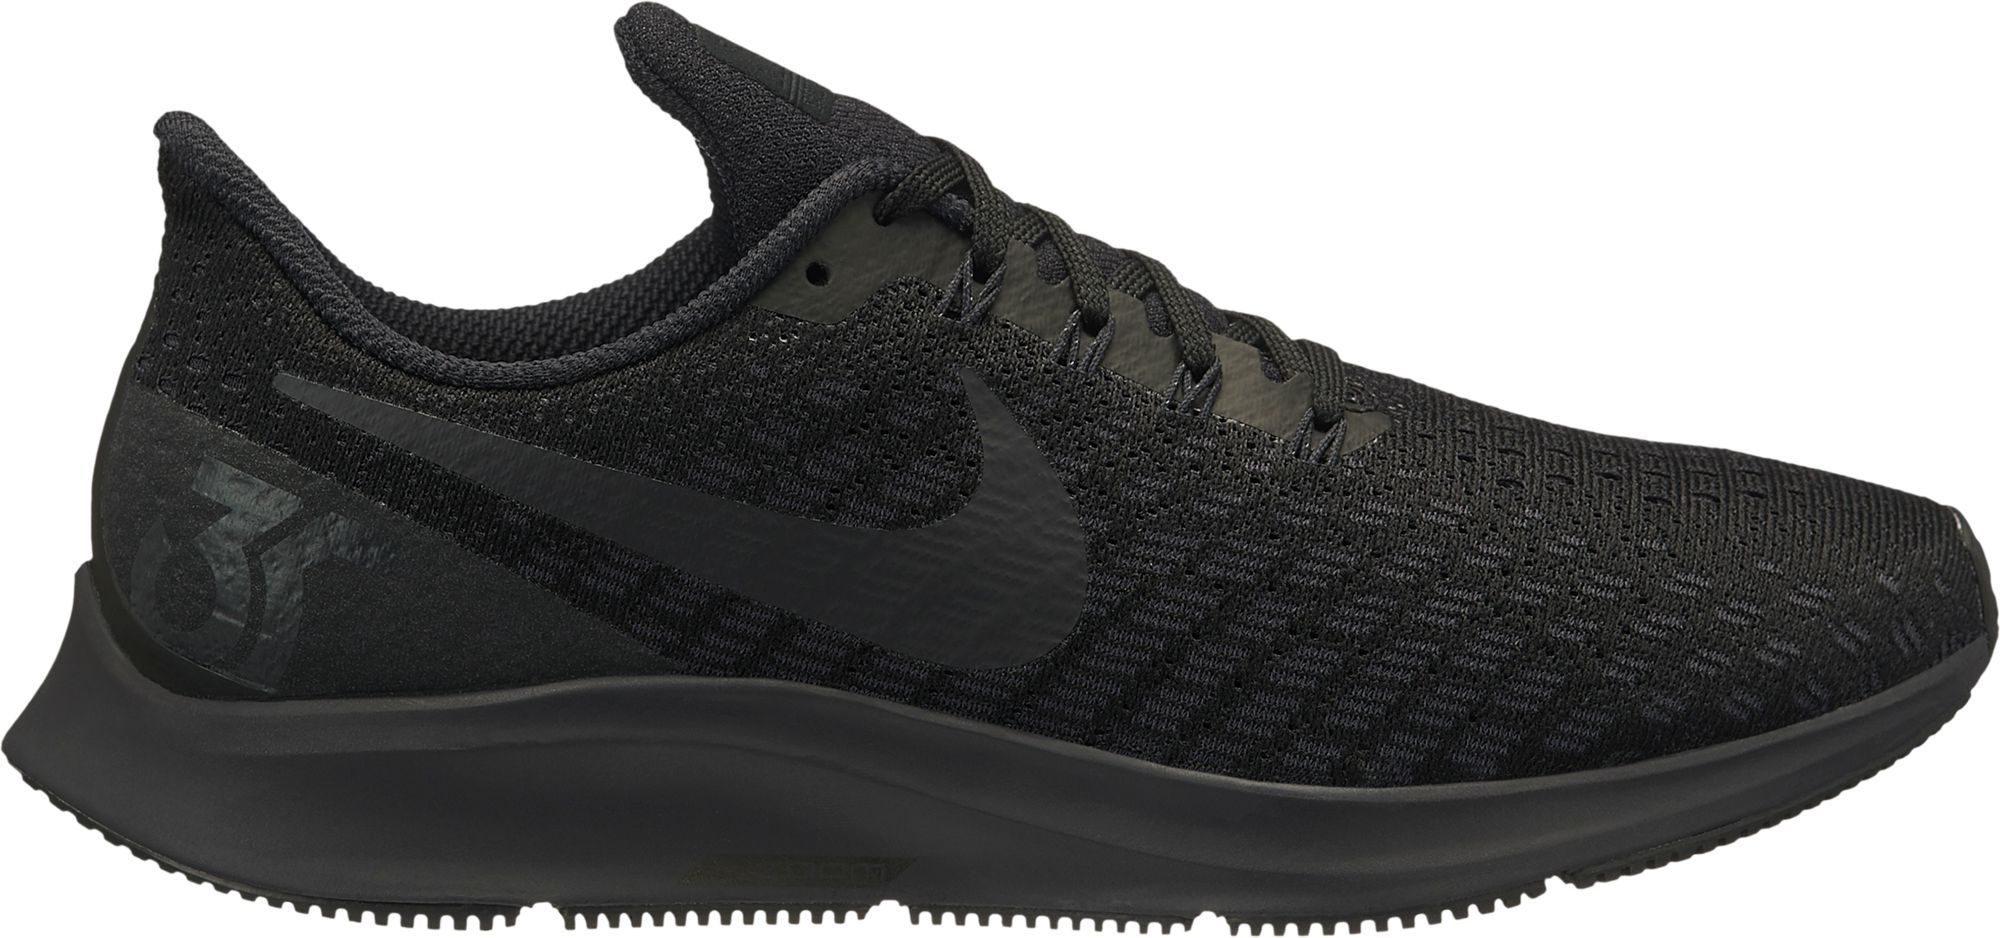 the best attitude f41bd 1b7c1 Nike Women's Air Zoom Pegasus 35 Running Shoes | Products ...